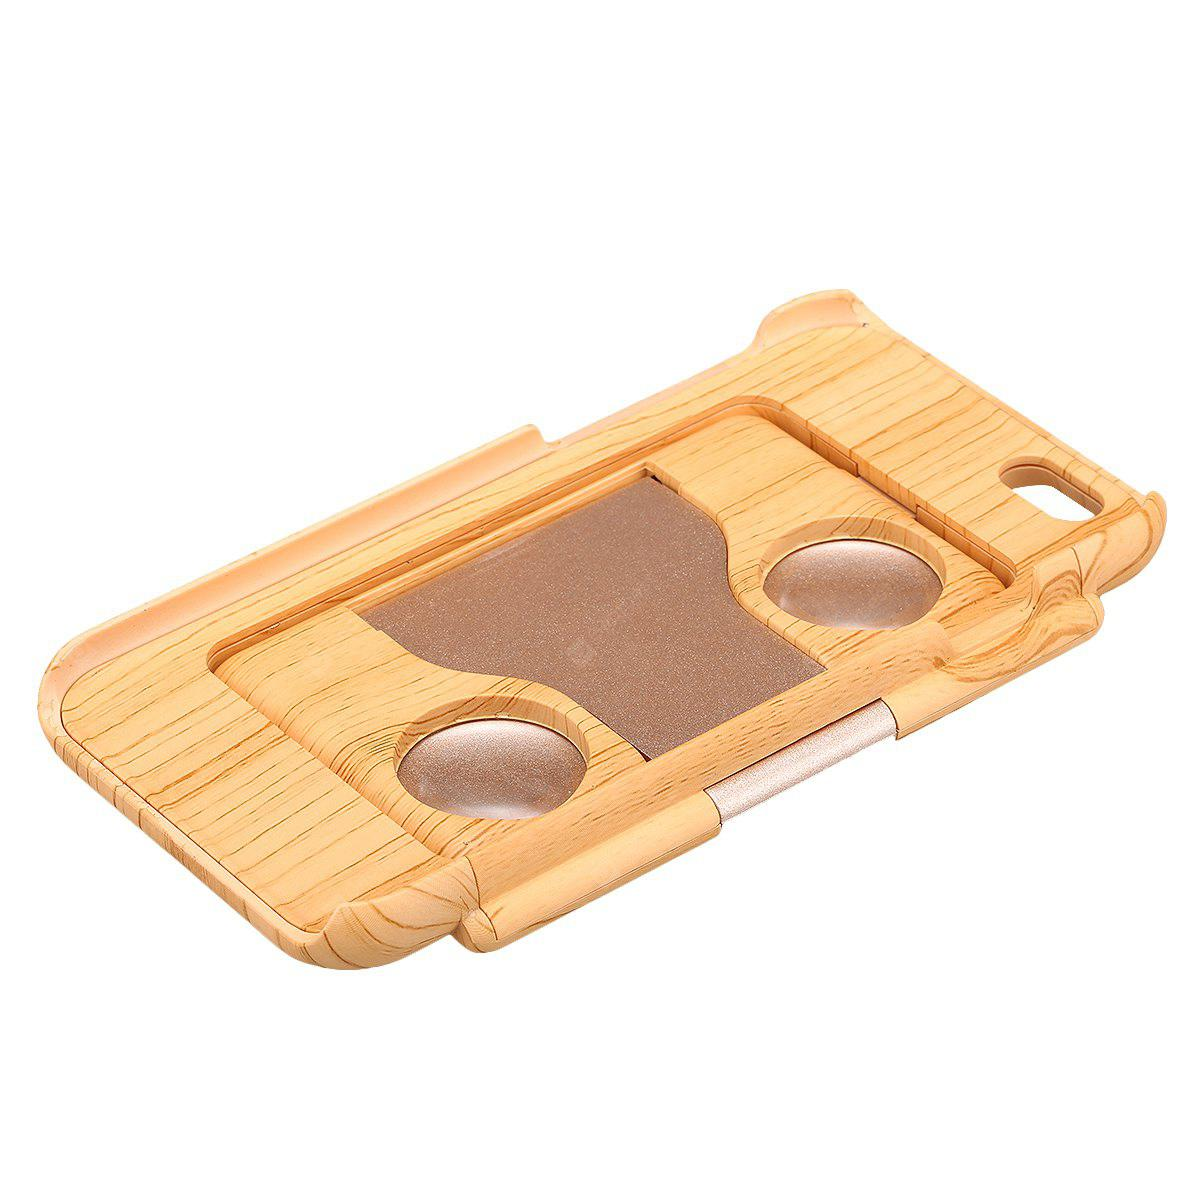 VR Shell 3D Glasses Smartphone Case for iPhone 6 / 6S